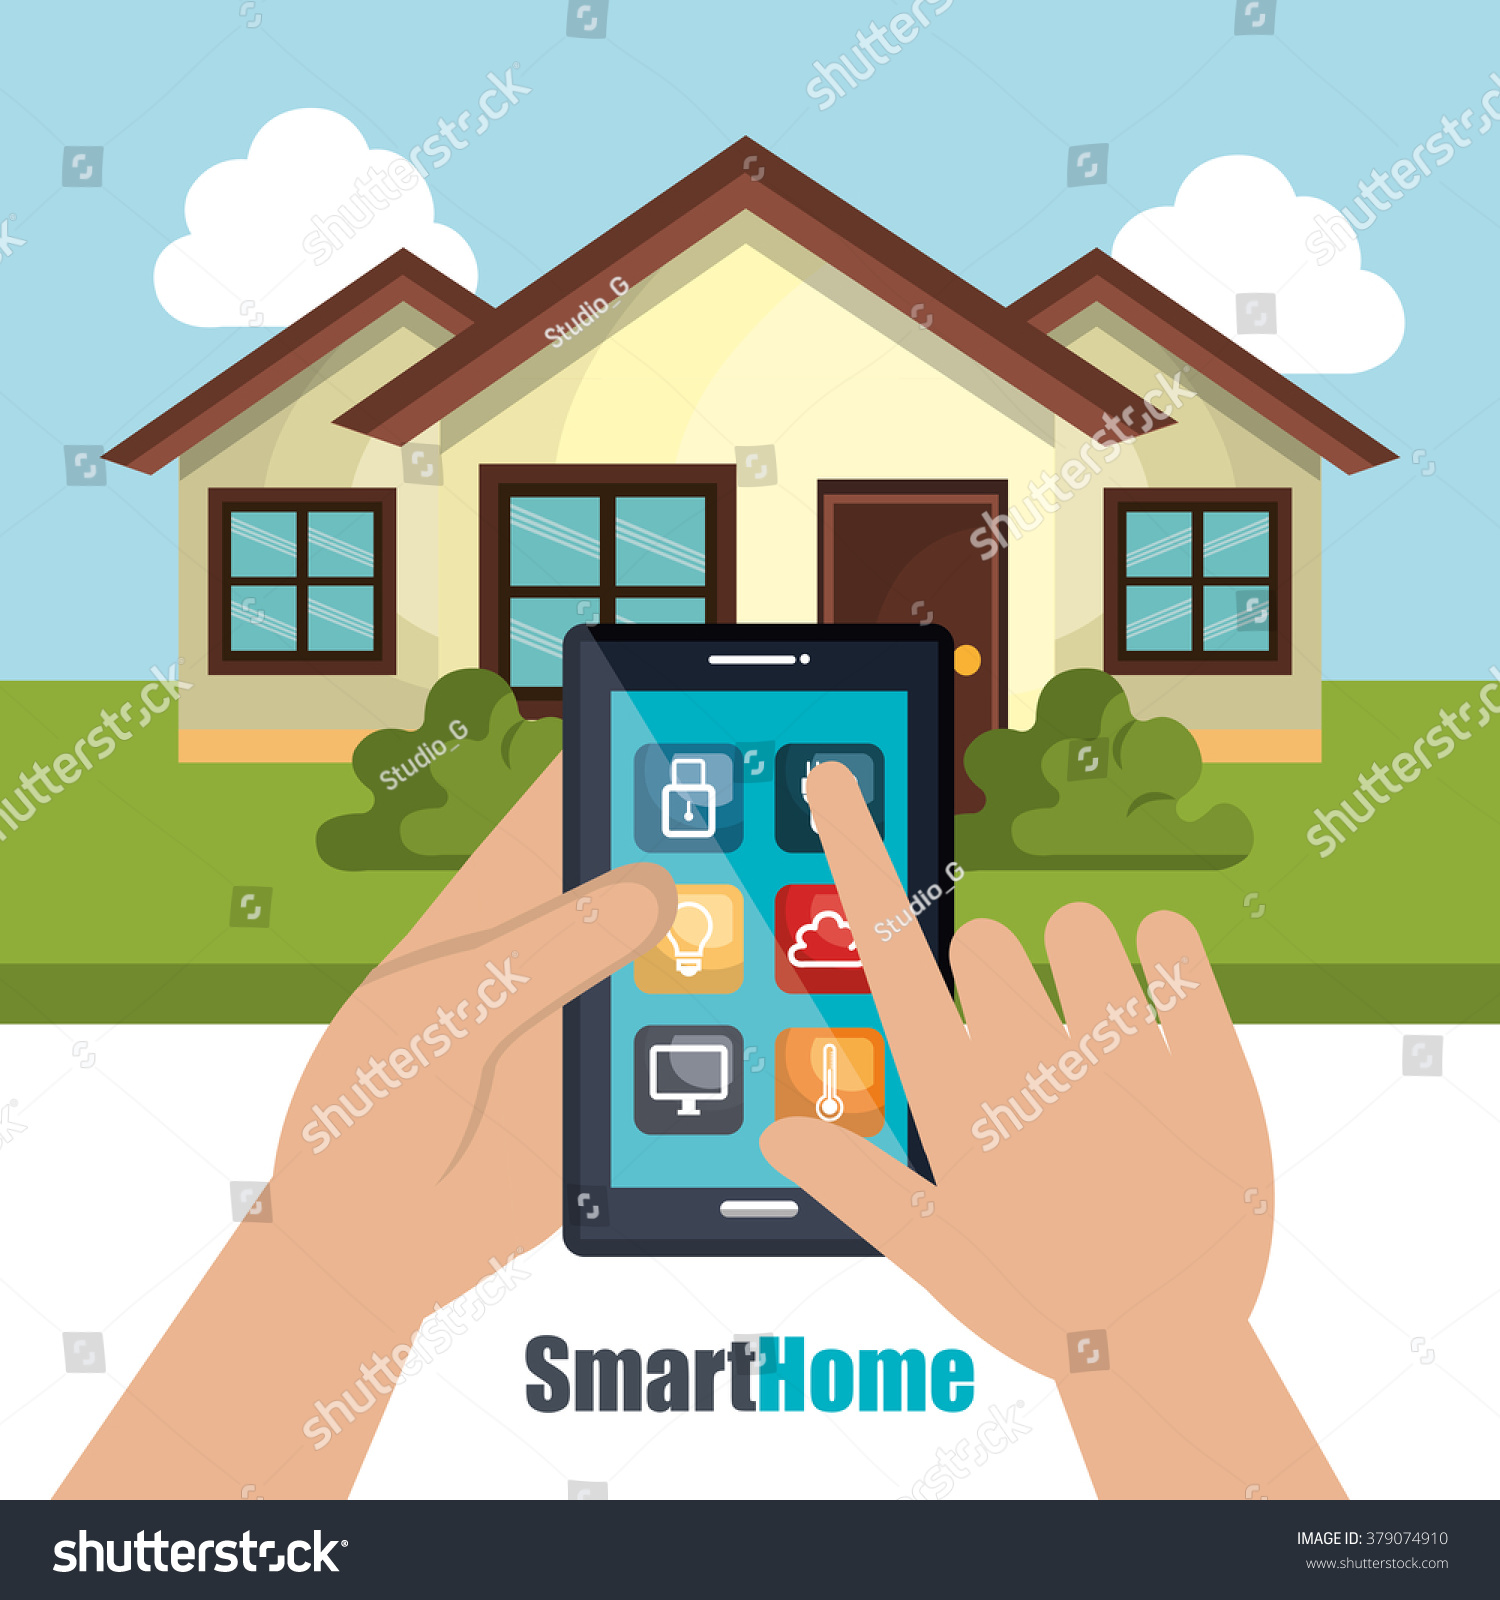 Smart Home Design Stock Vector Shutterstock